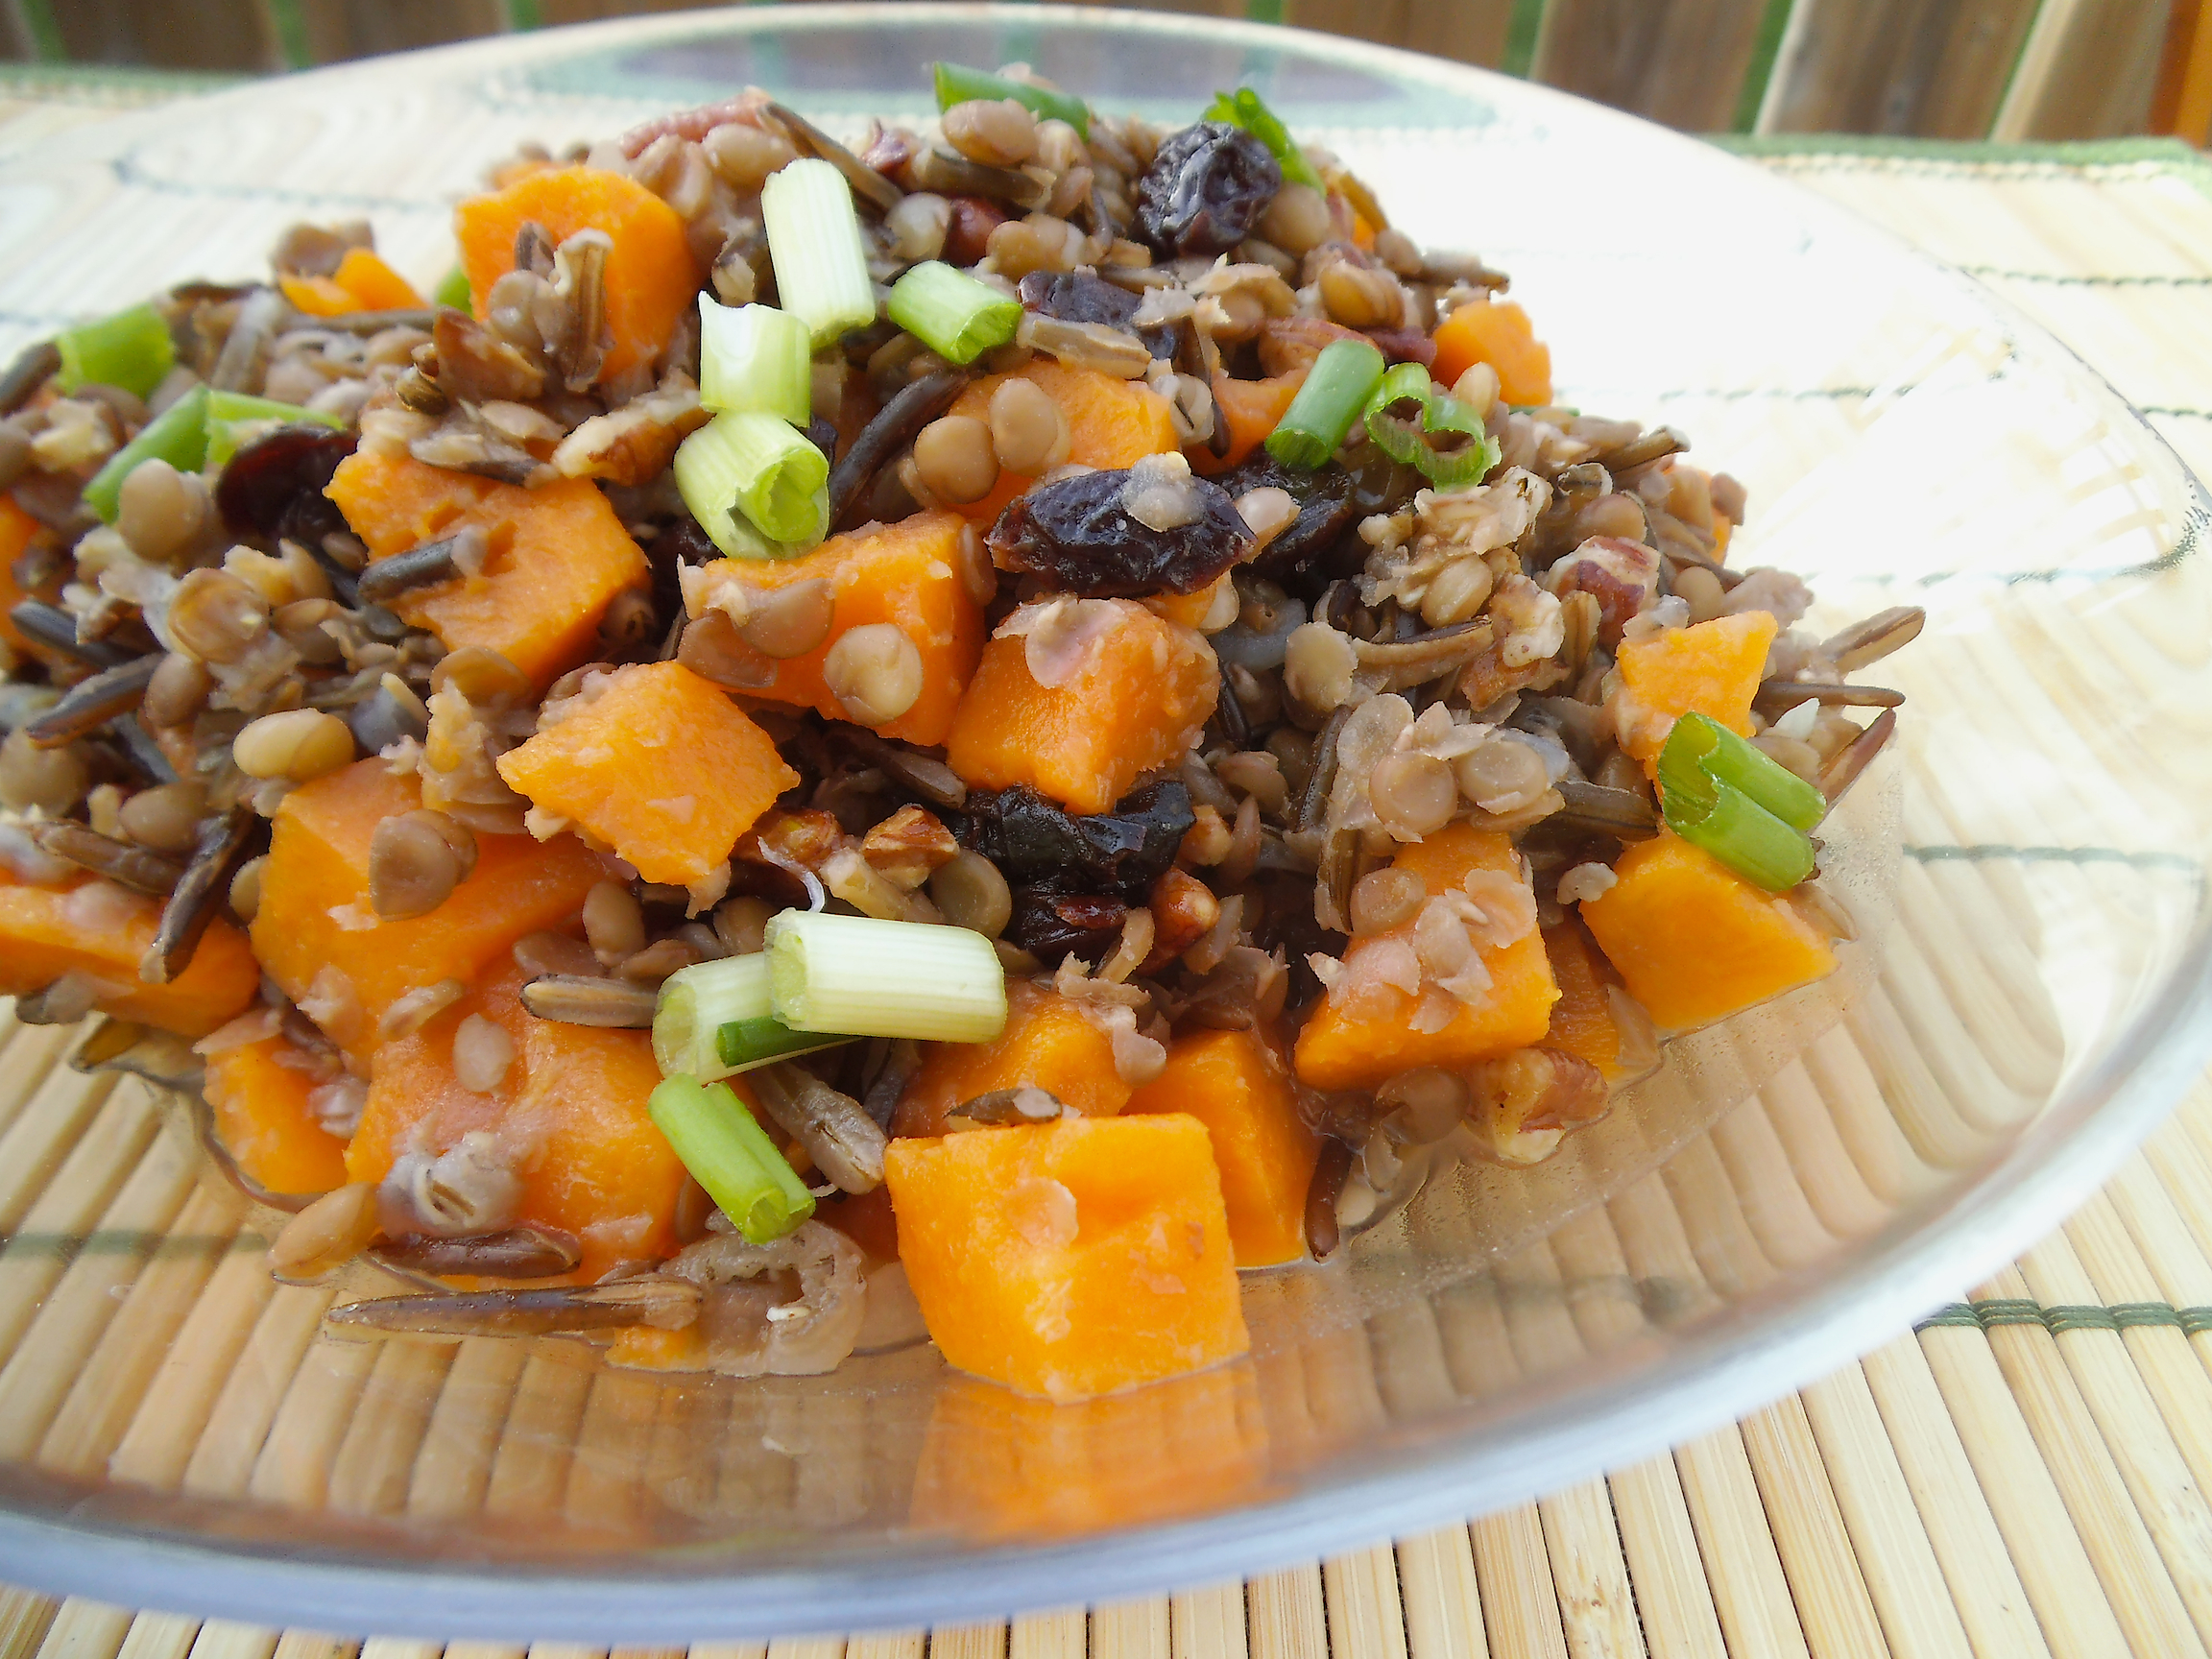 ... with Lentils, Wild Rice, and Orange Pecan Dressing | Swirls and Spice